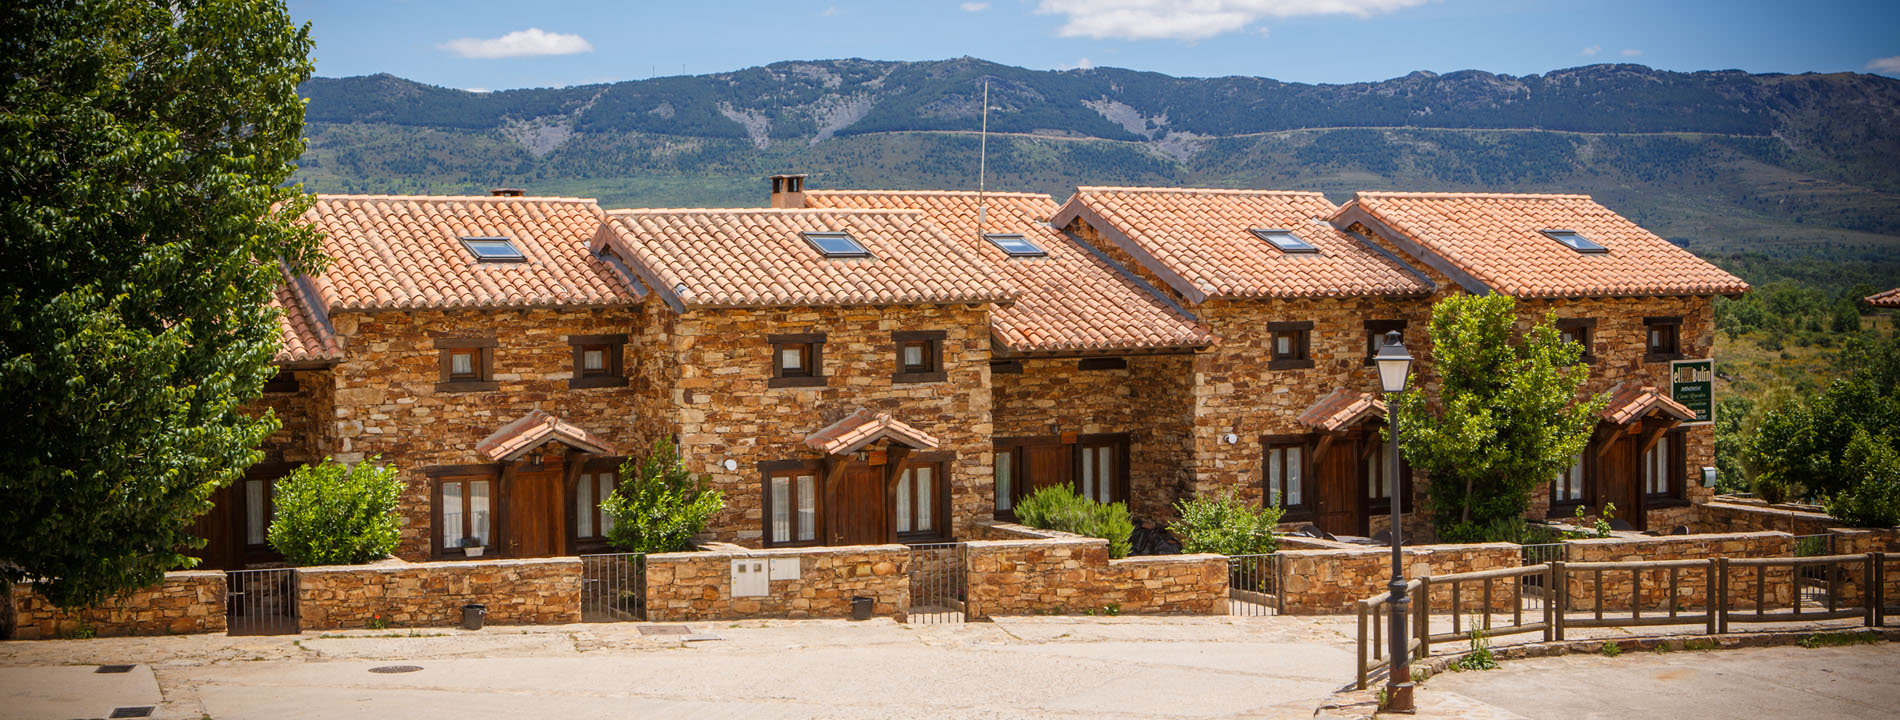 El bul n casas rurales con encanto en la sierra norte de for Casa rural con piscina independiente